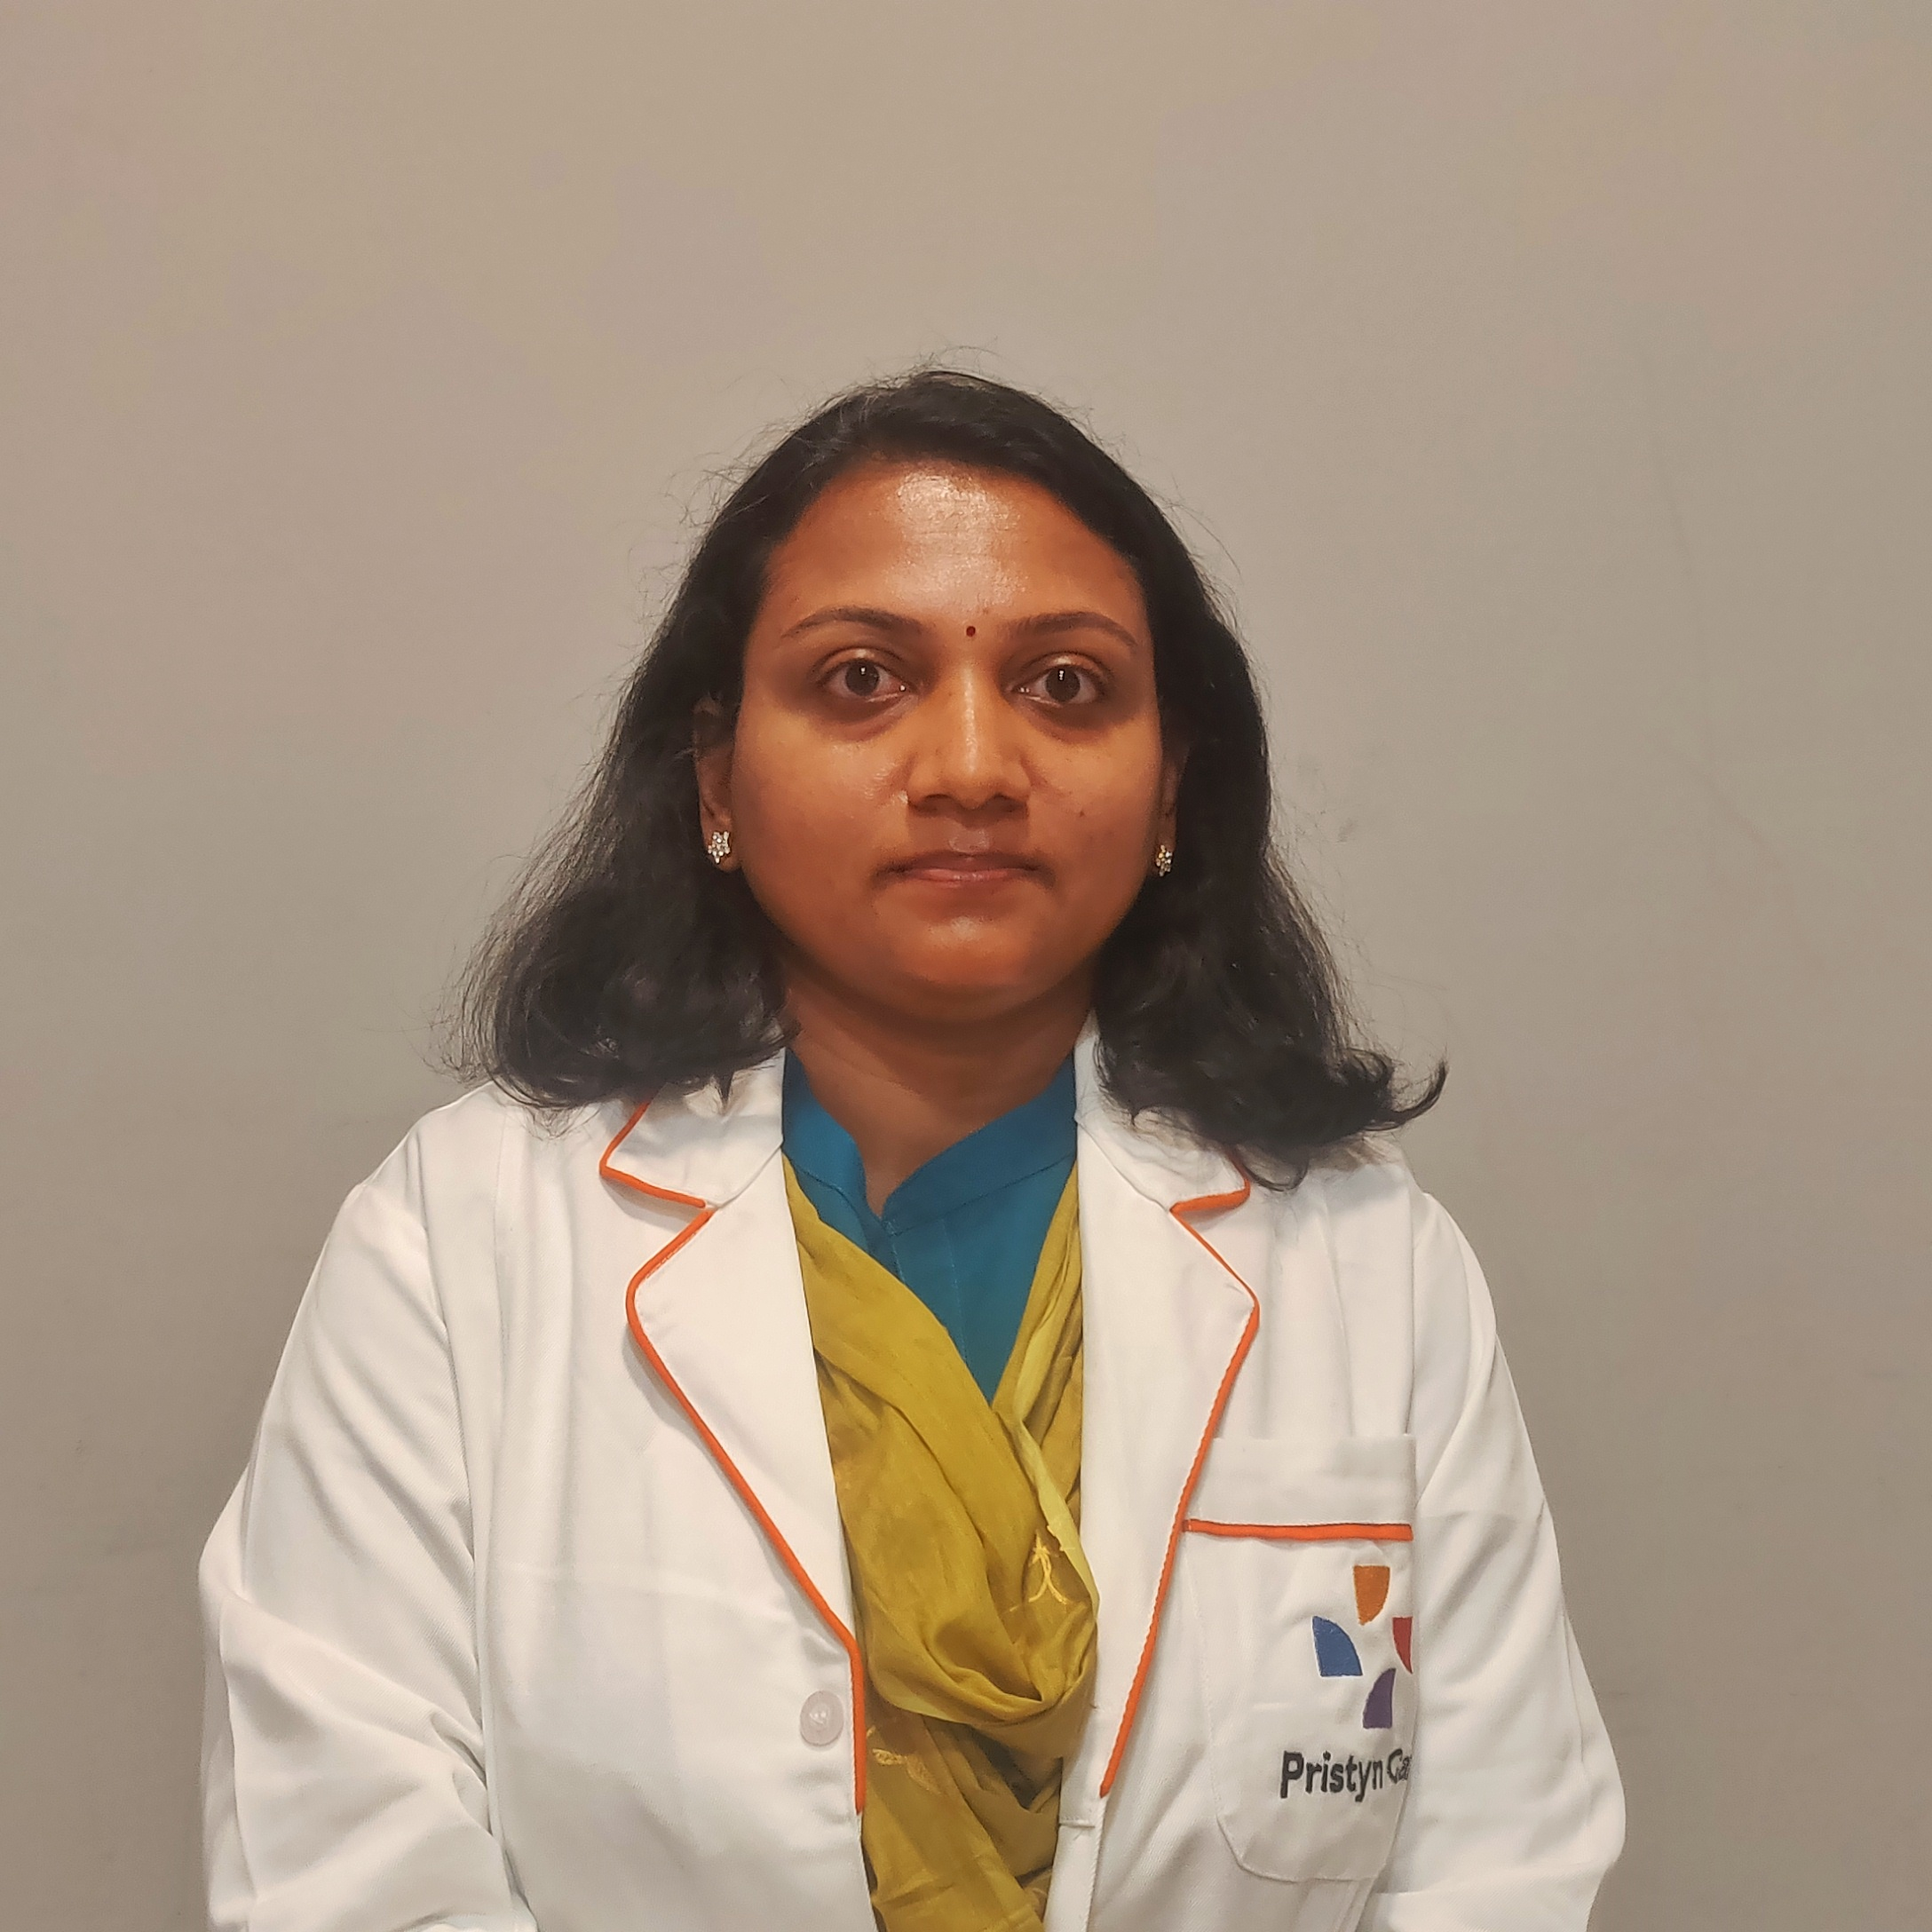 Image of Dr. Shilpa Kava Pap Smear specialist in Bangalore